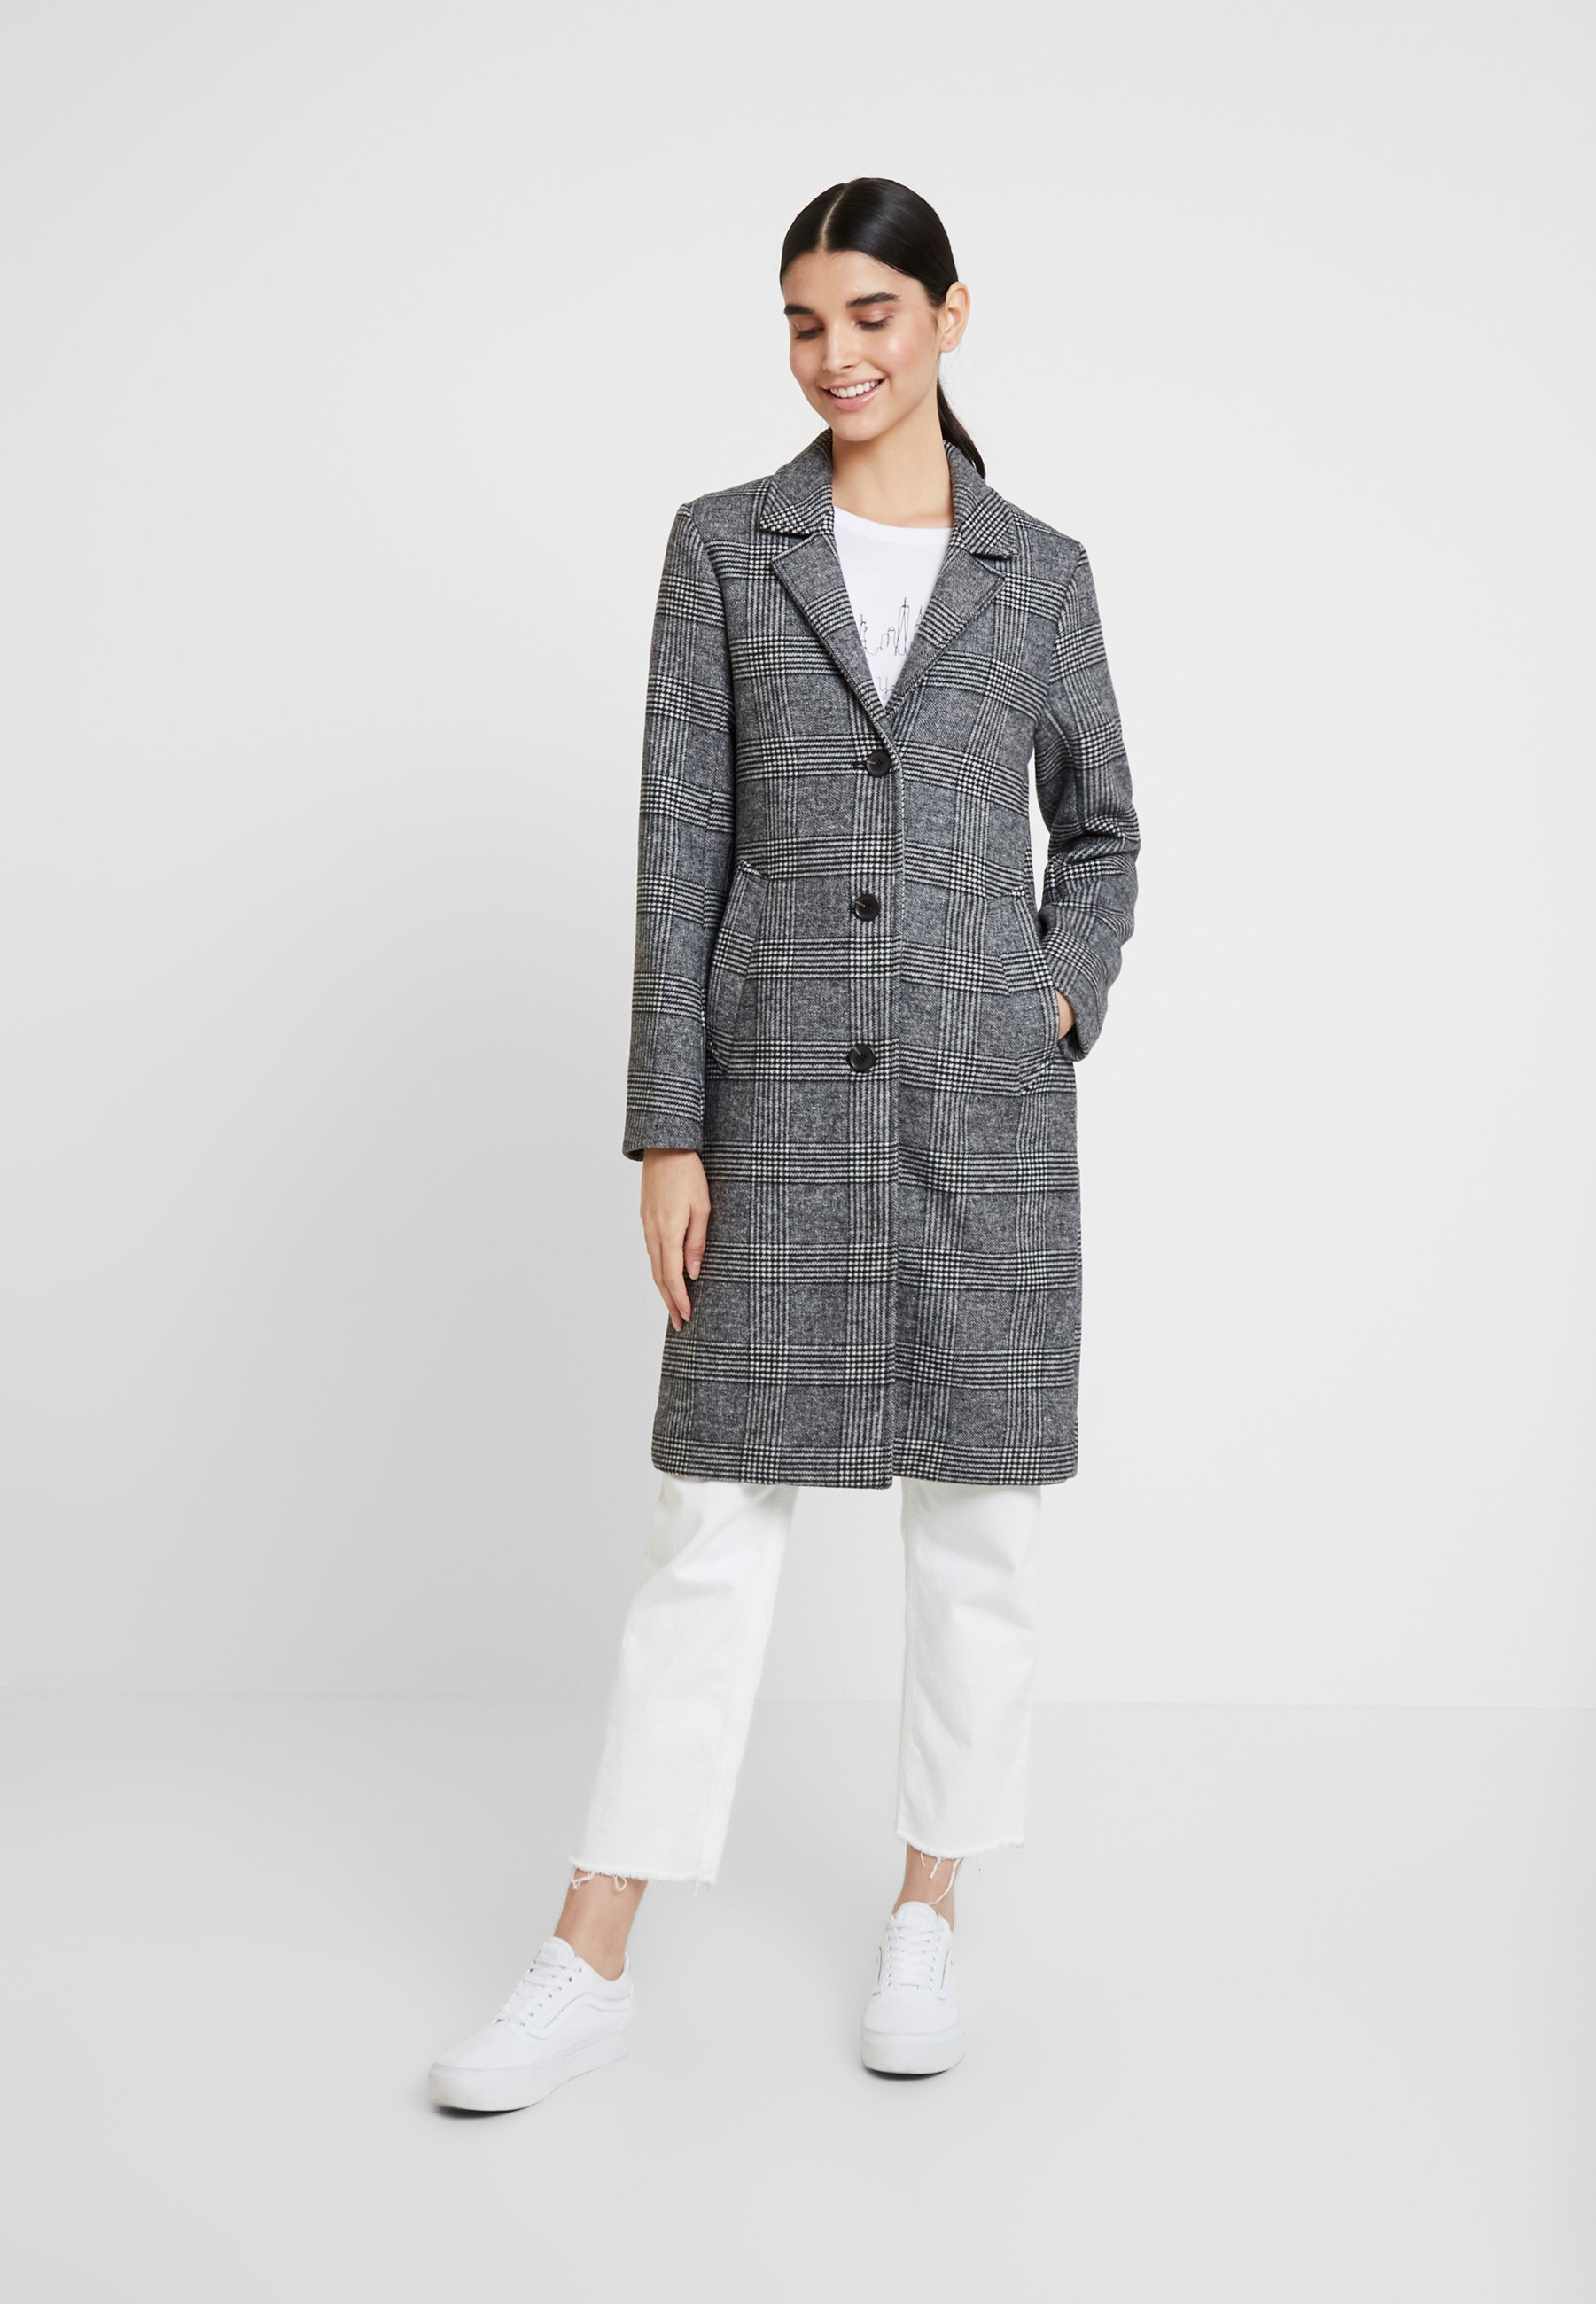 Fitch Grey CoatCappotto Dad Abercrombieamp; Classico hCtsrdQx